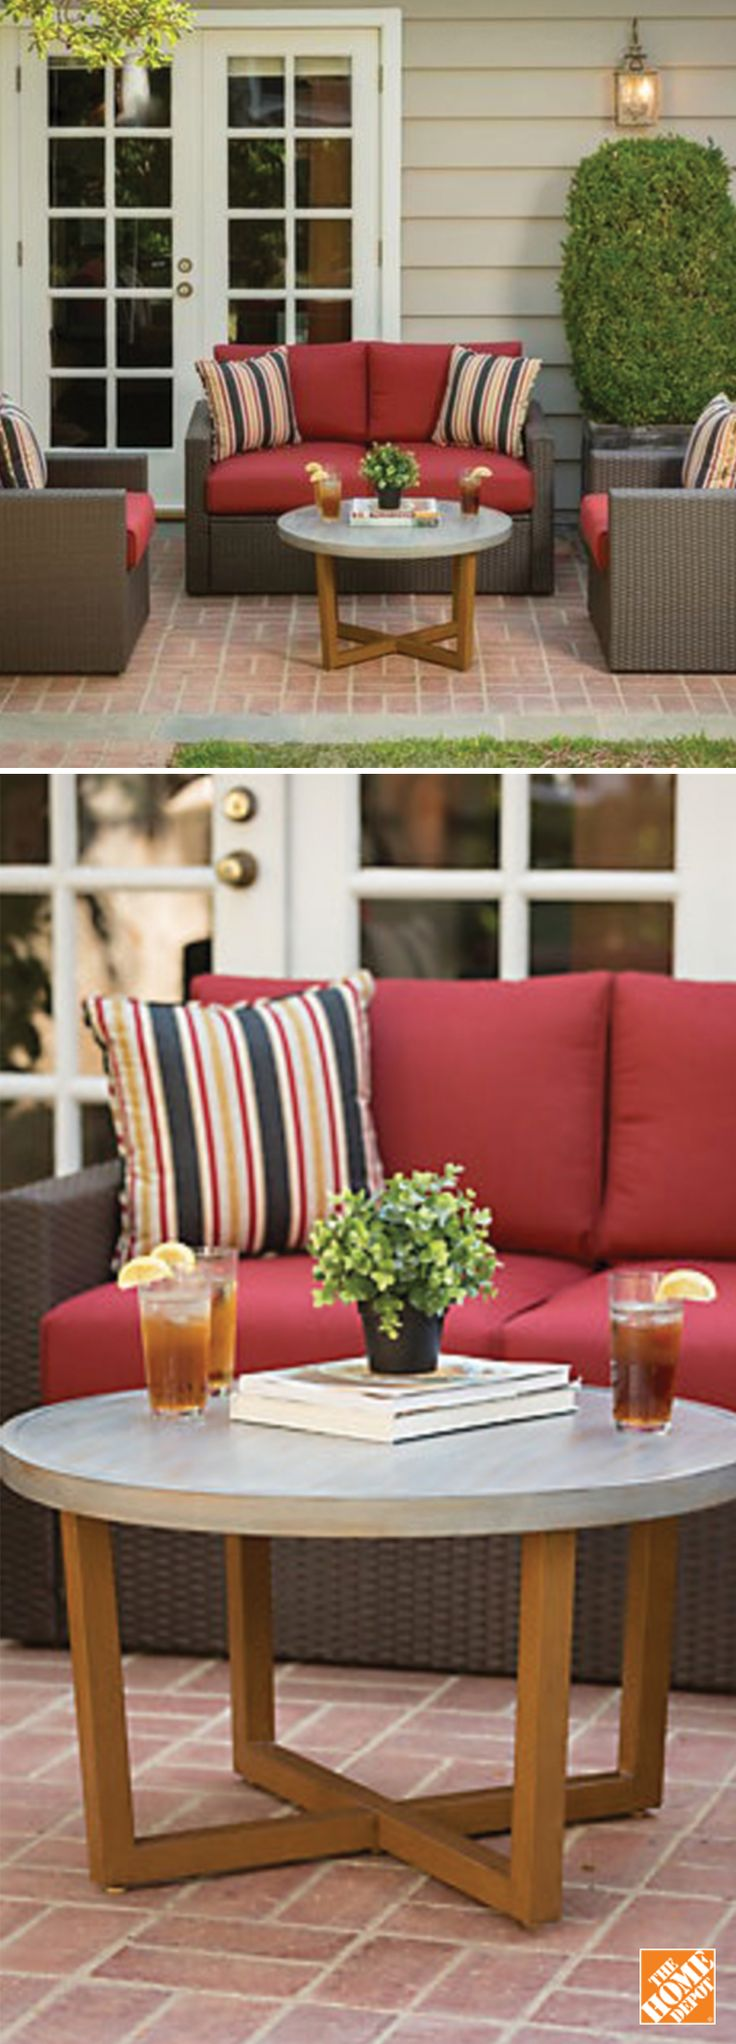 The clean lines of this outdoor furniture are warmed by the rich texture and hues of wicker, while plush, generous cushions allow for relaxation and comfort. Shop now at HomeDepot.ca: http://hdepot.ca/2qlrIfR